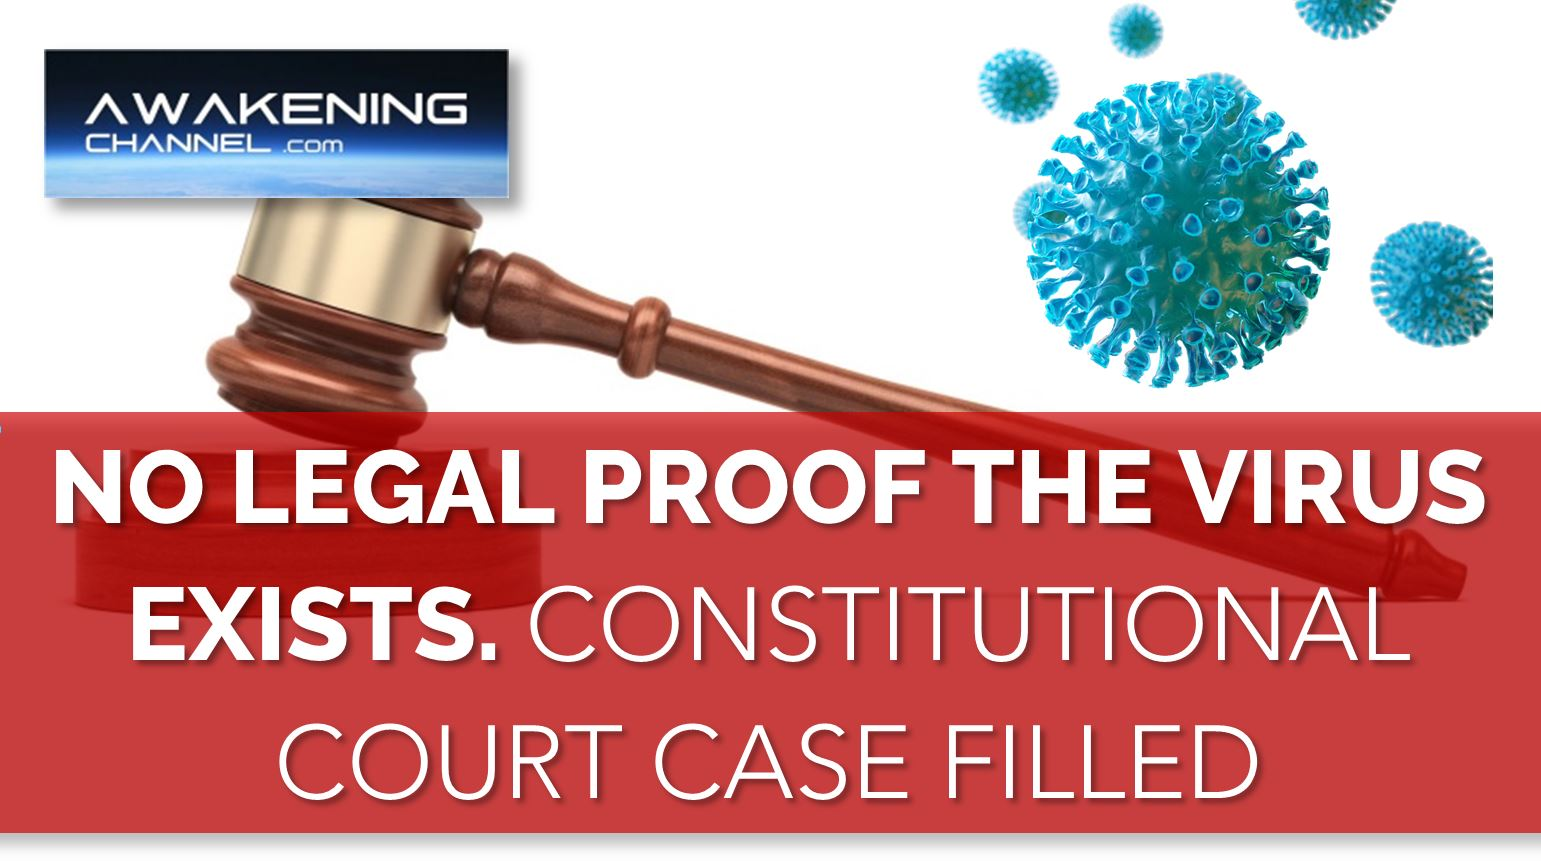 """Constitutional Court Case Against The President, The Parliament and The Reserve Bank of South Africa Regarding the """"Virus"""""""